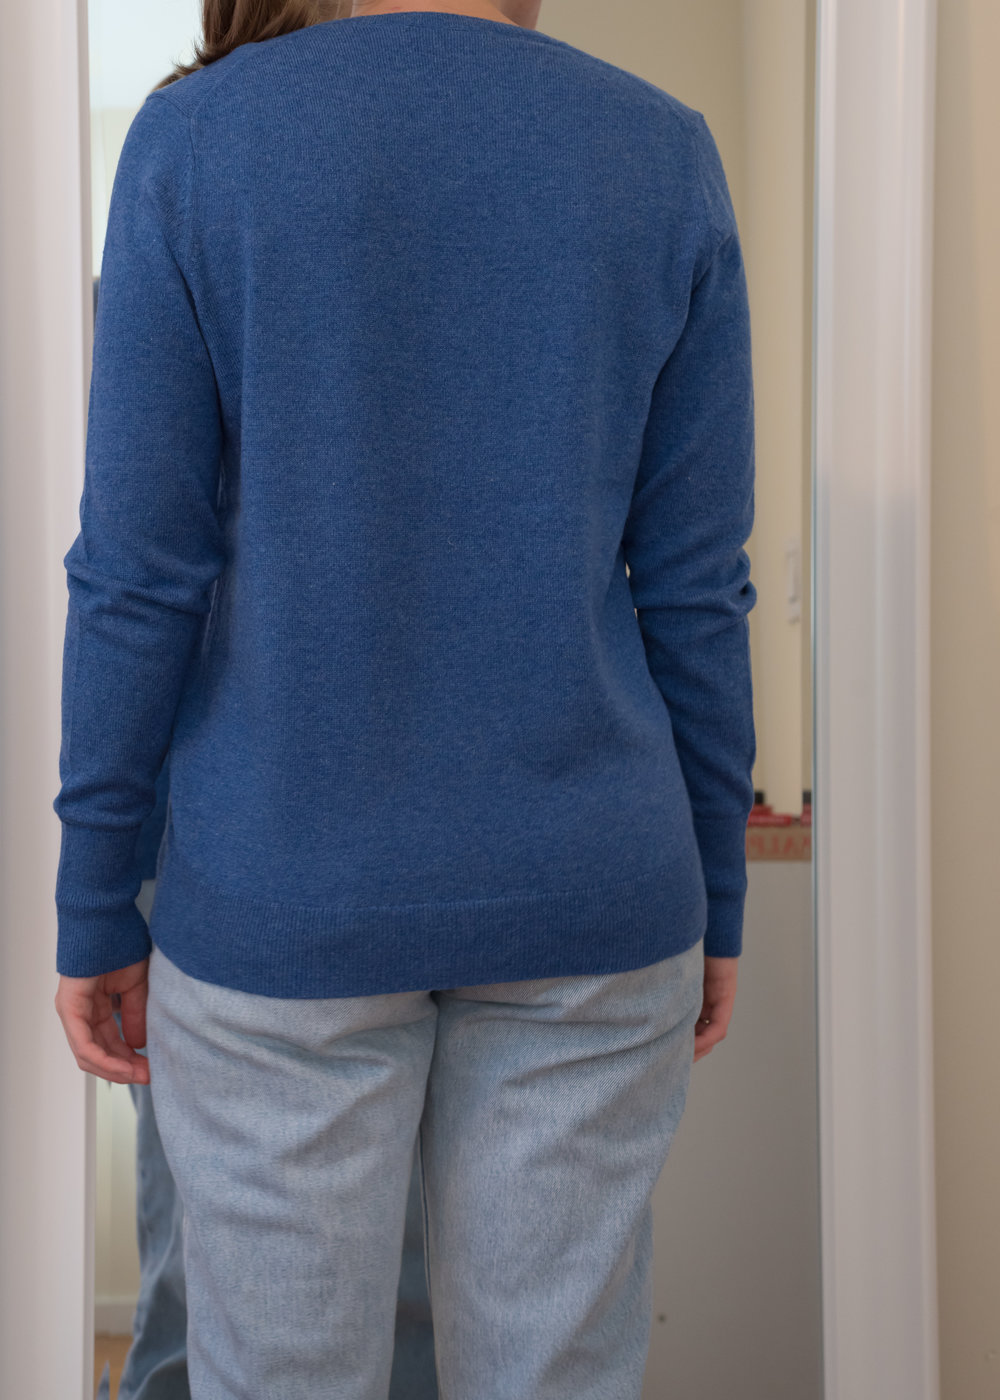 Everlane Cashmere V-Neck Sweater - Back View